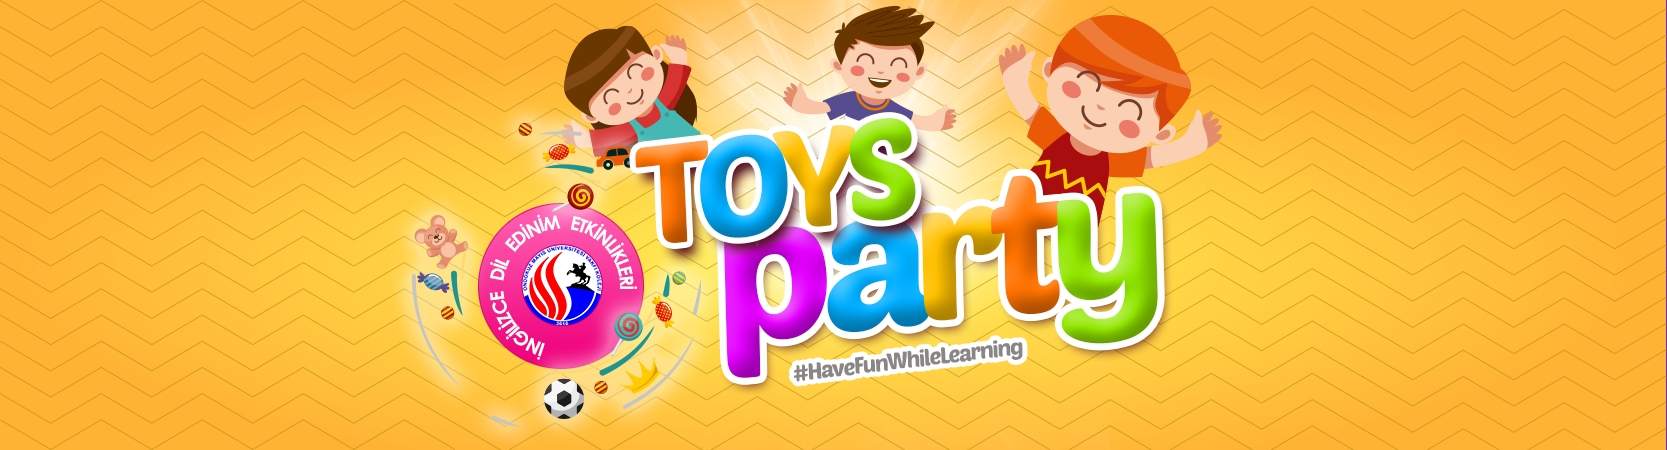 Toys Party